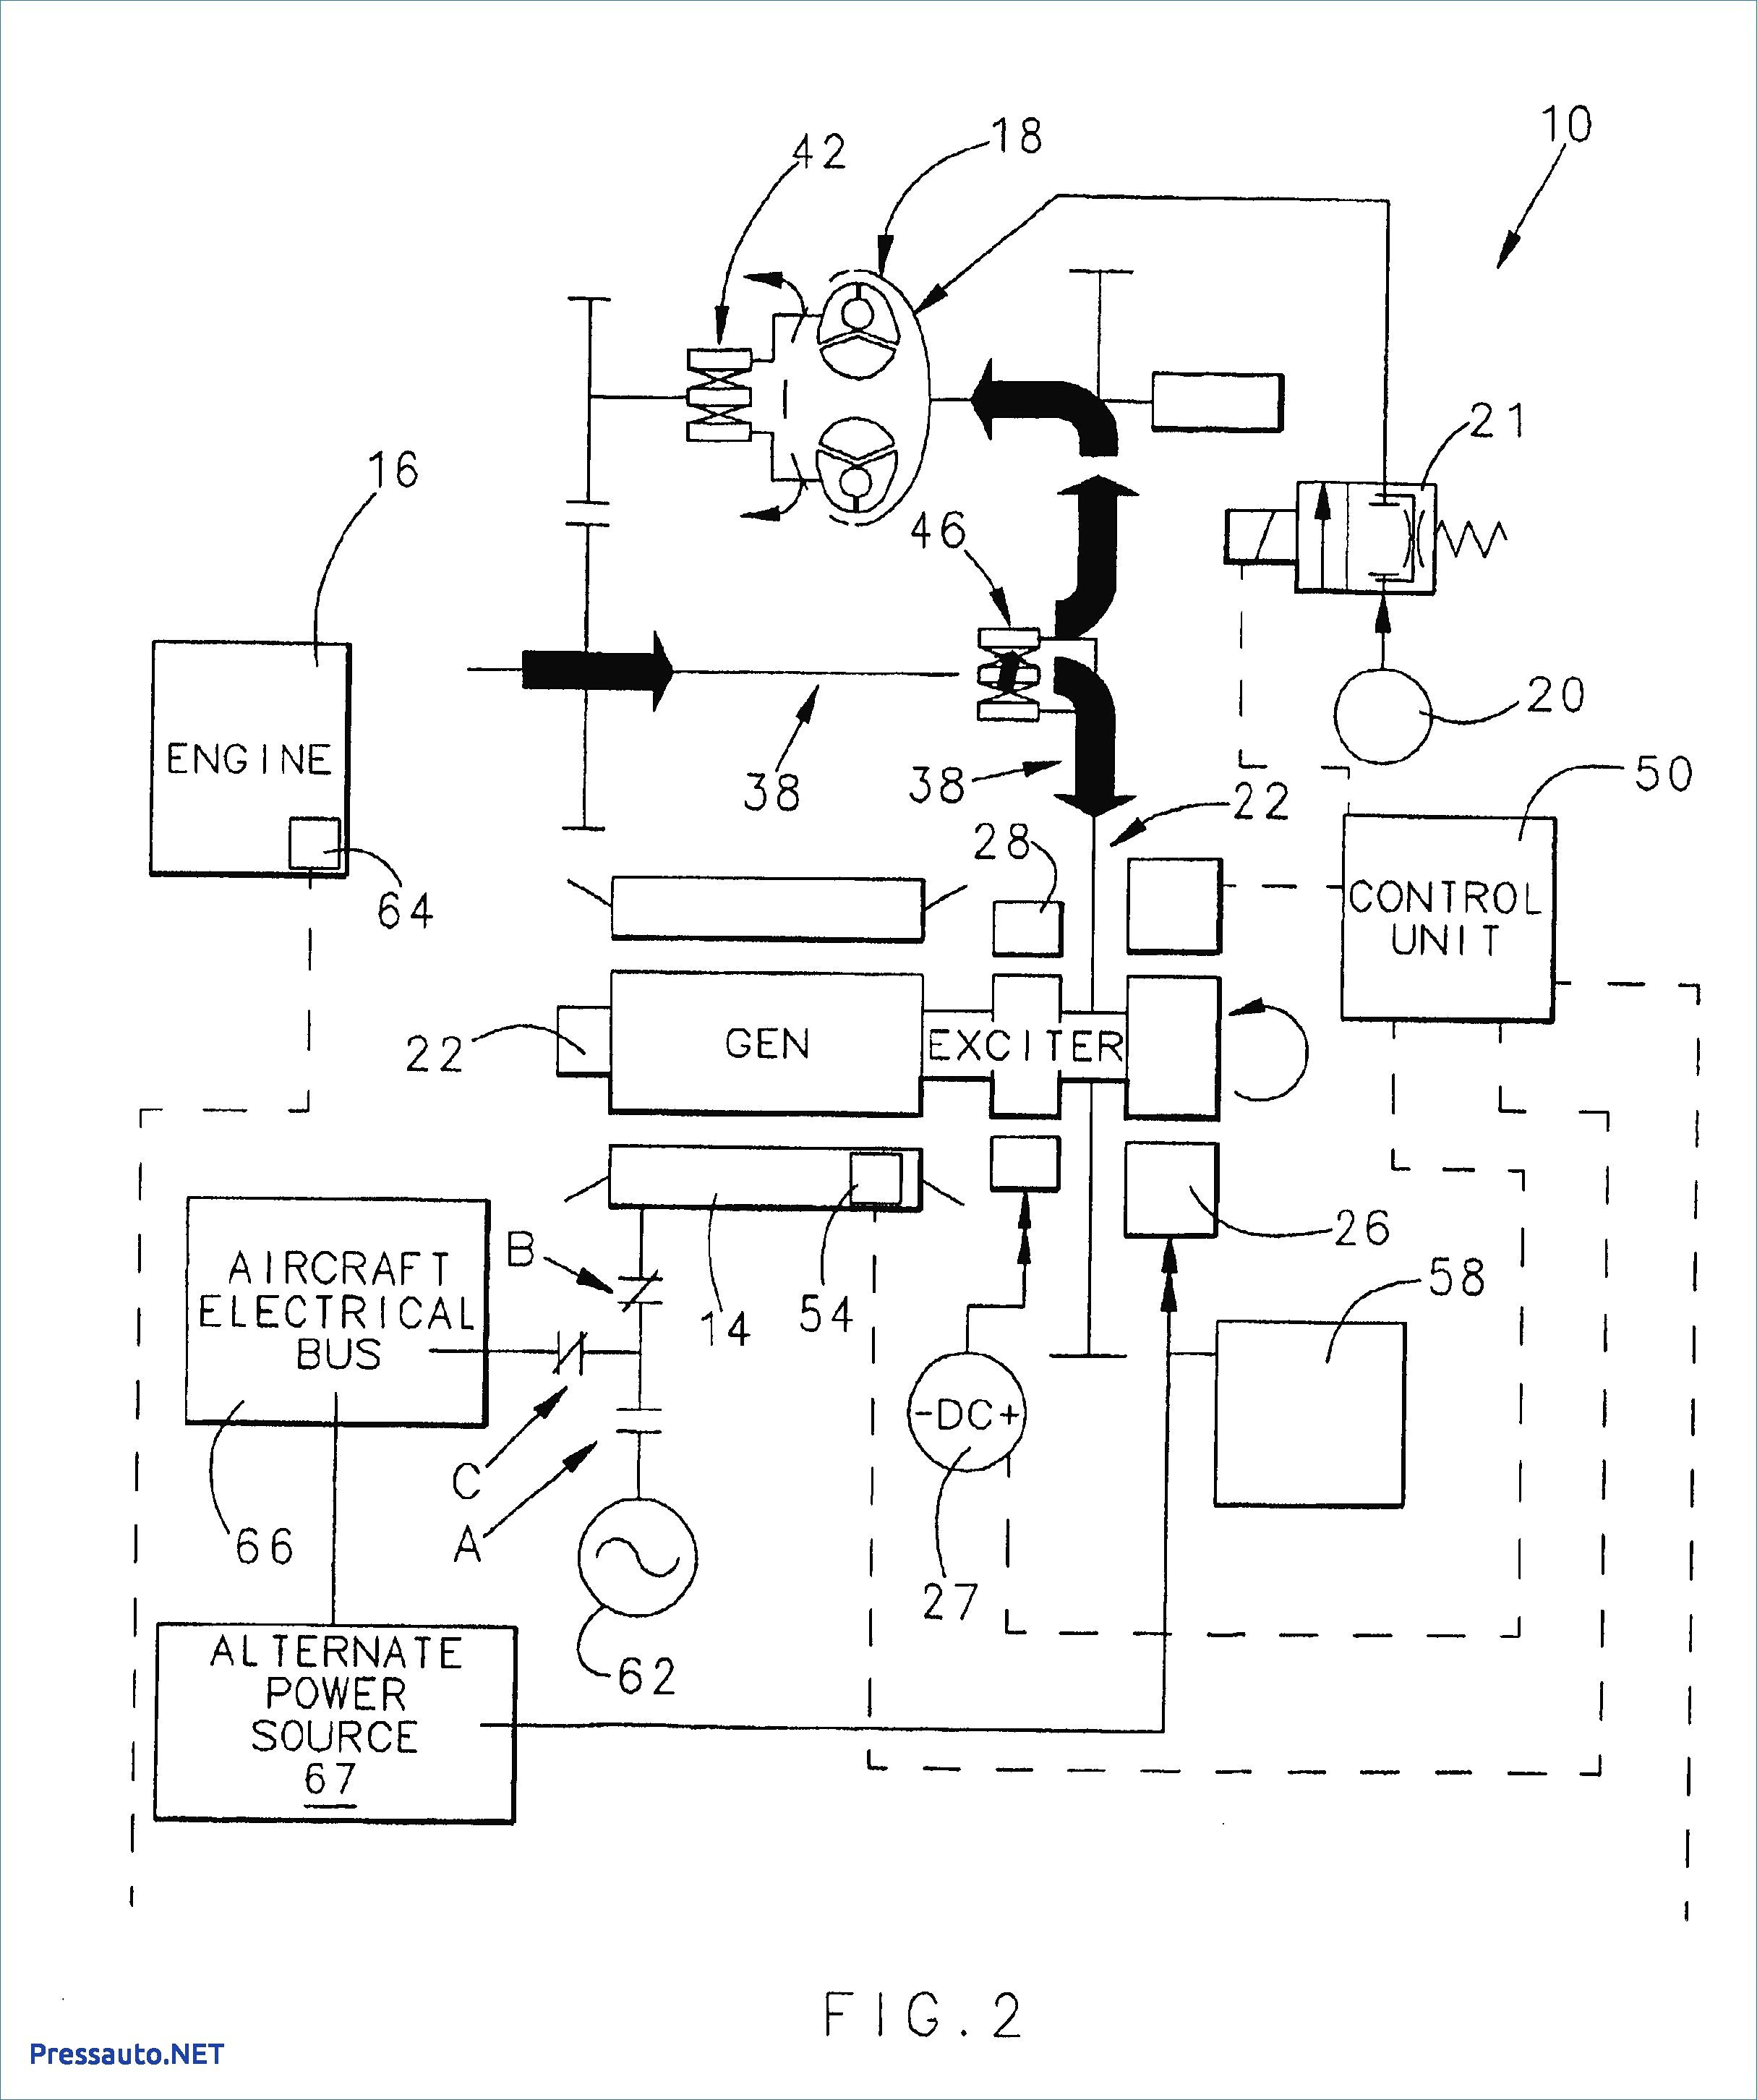 Honda Del Sol Engine Diagram My Wiring Cr V Cooling Fan 93 Wire Diagrams Instructions Drivetrain Schematic